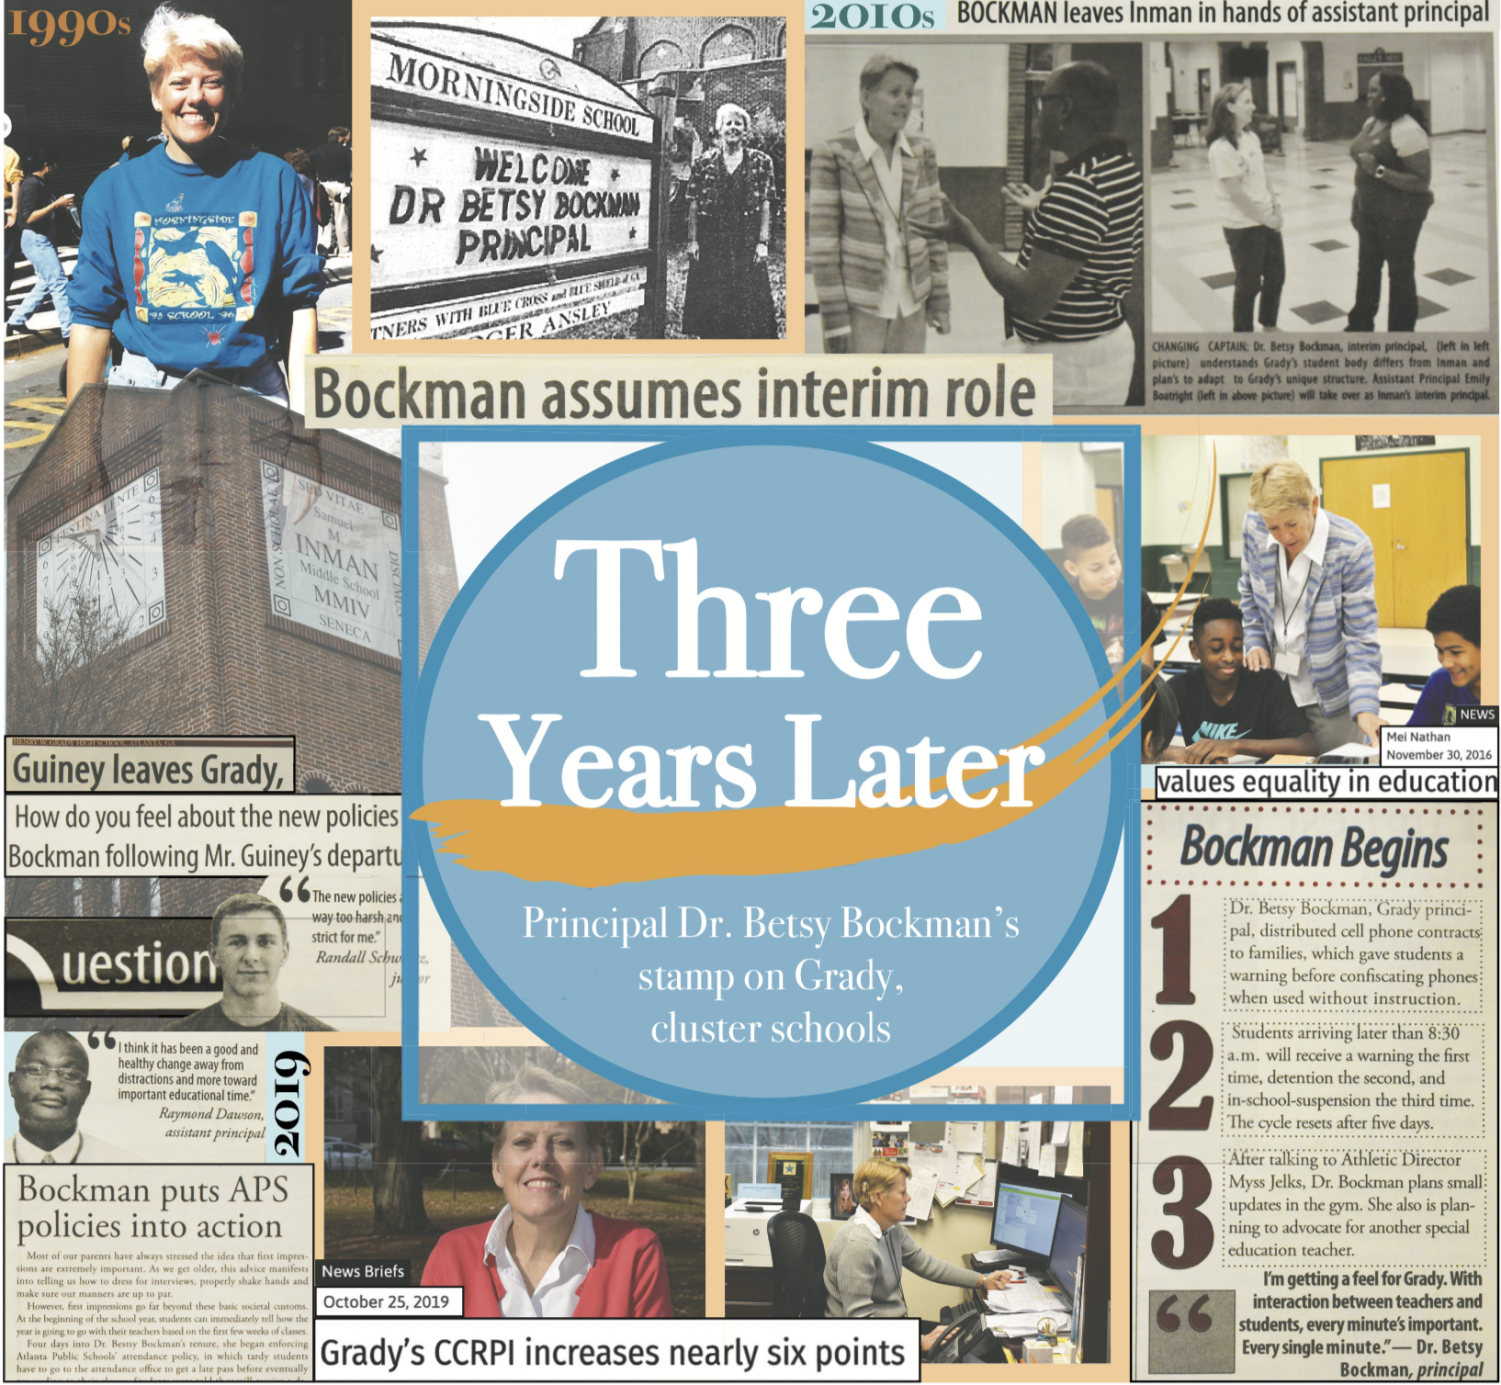 SCRAPBOOK: Above clippings and photographs from the Southerner's archives and Principal Dr. Betsy Bockman's records illustrate her impact on Atlanta Public Schools at Morningside Elementary, Inman Middle and Grady High. 2019 marks her third year at Grady.